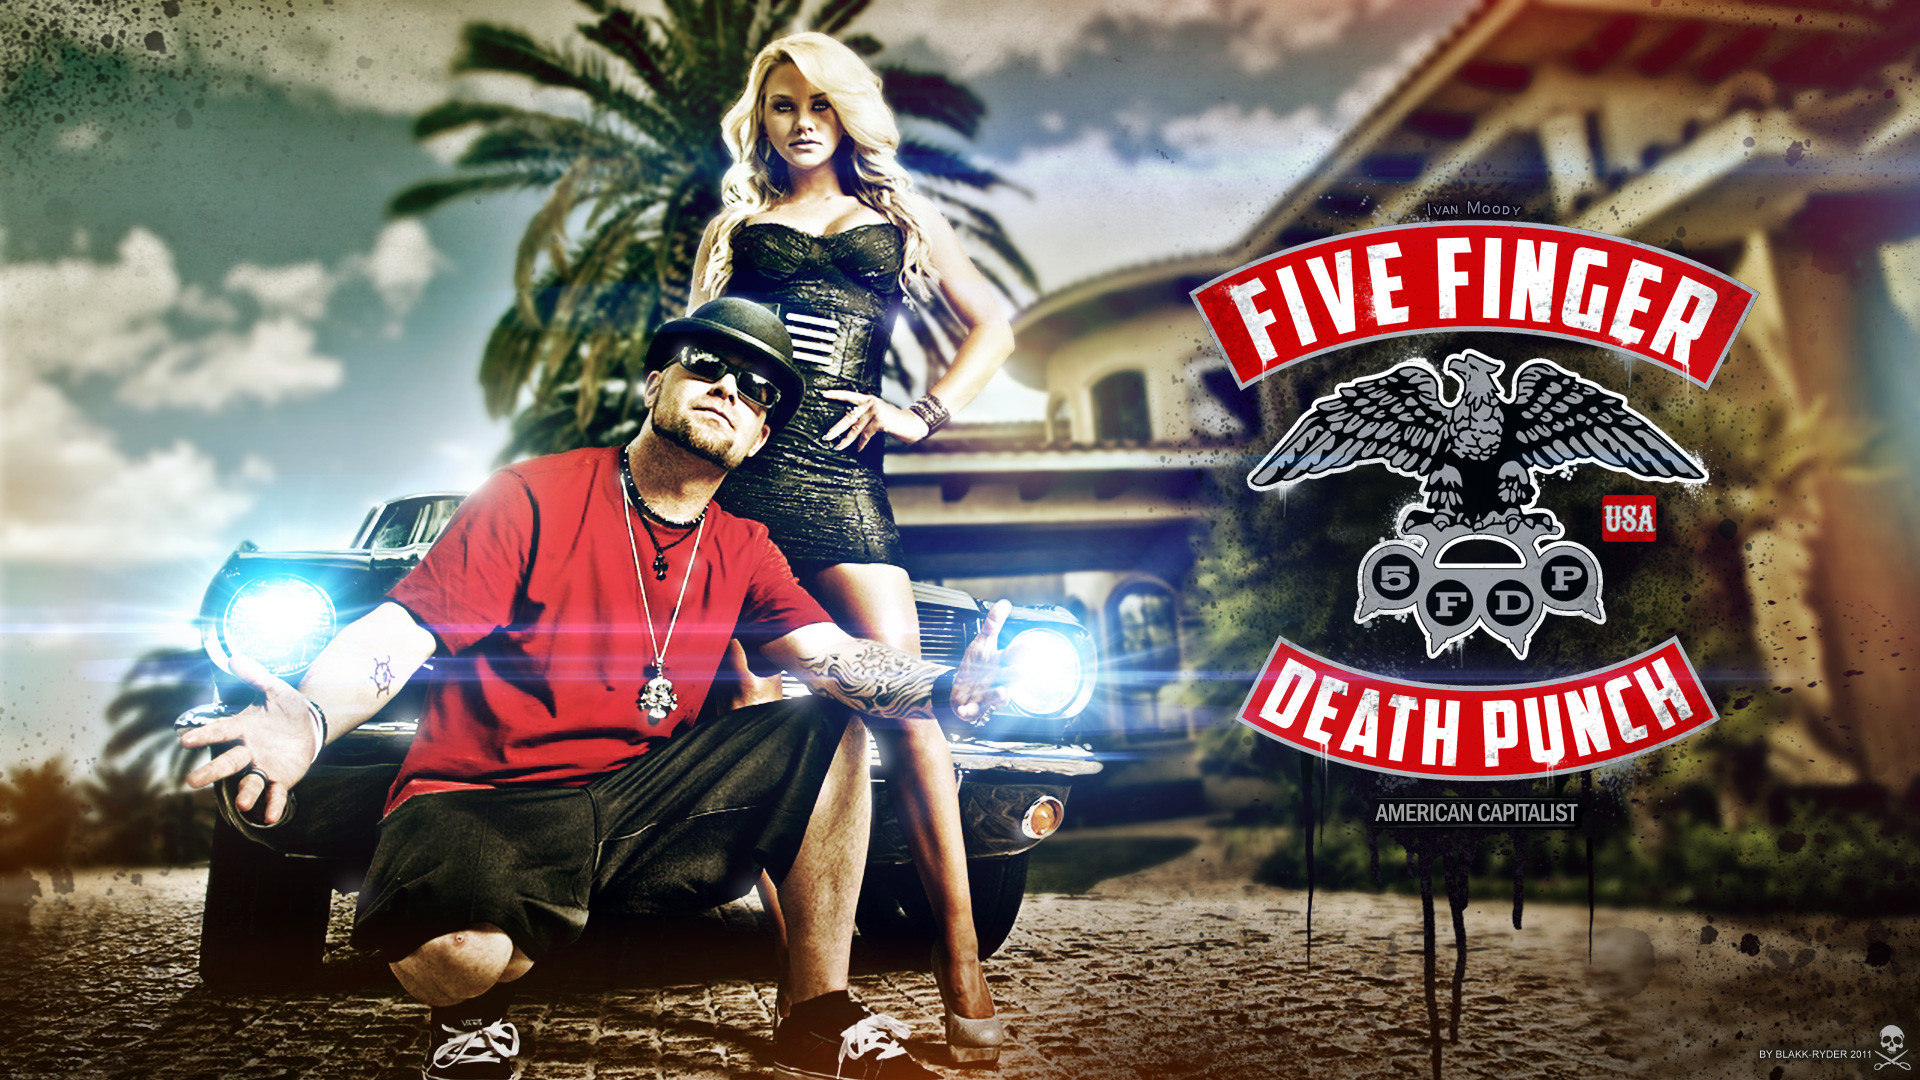 1920x1080 10 Five Finger Death Punch HD Wallpapers | Backgrounds - Wallpaper Abyss